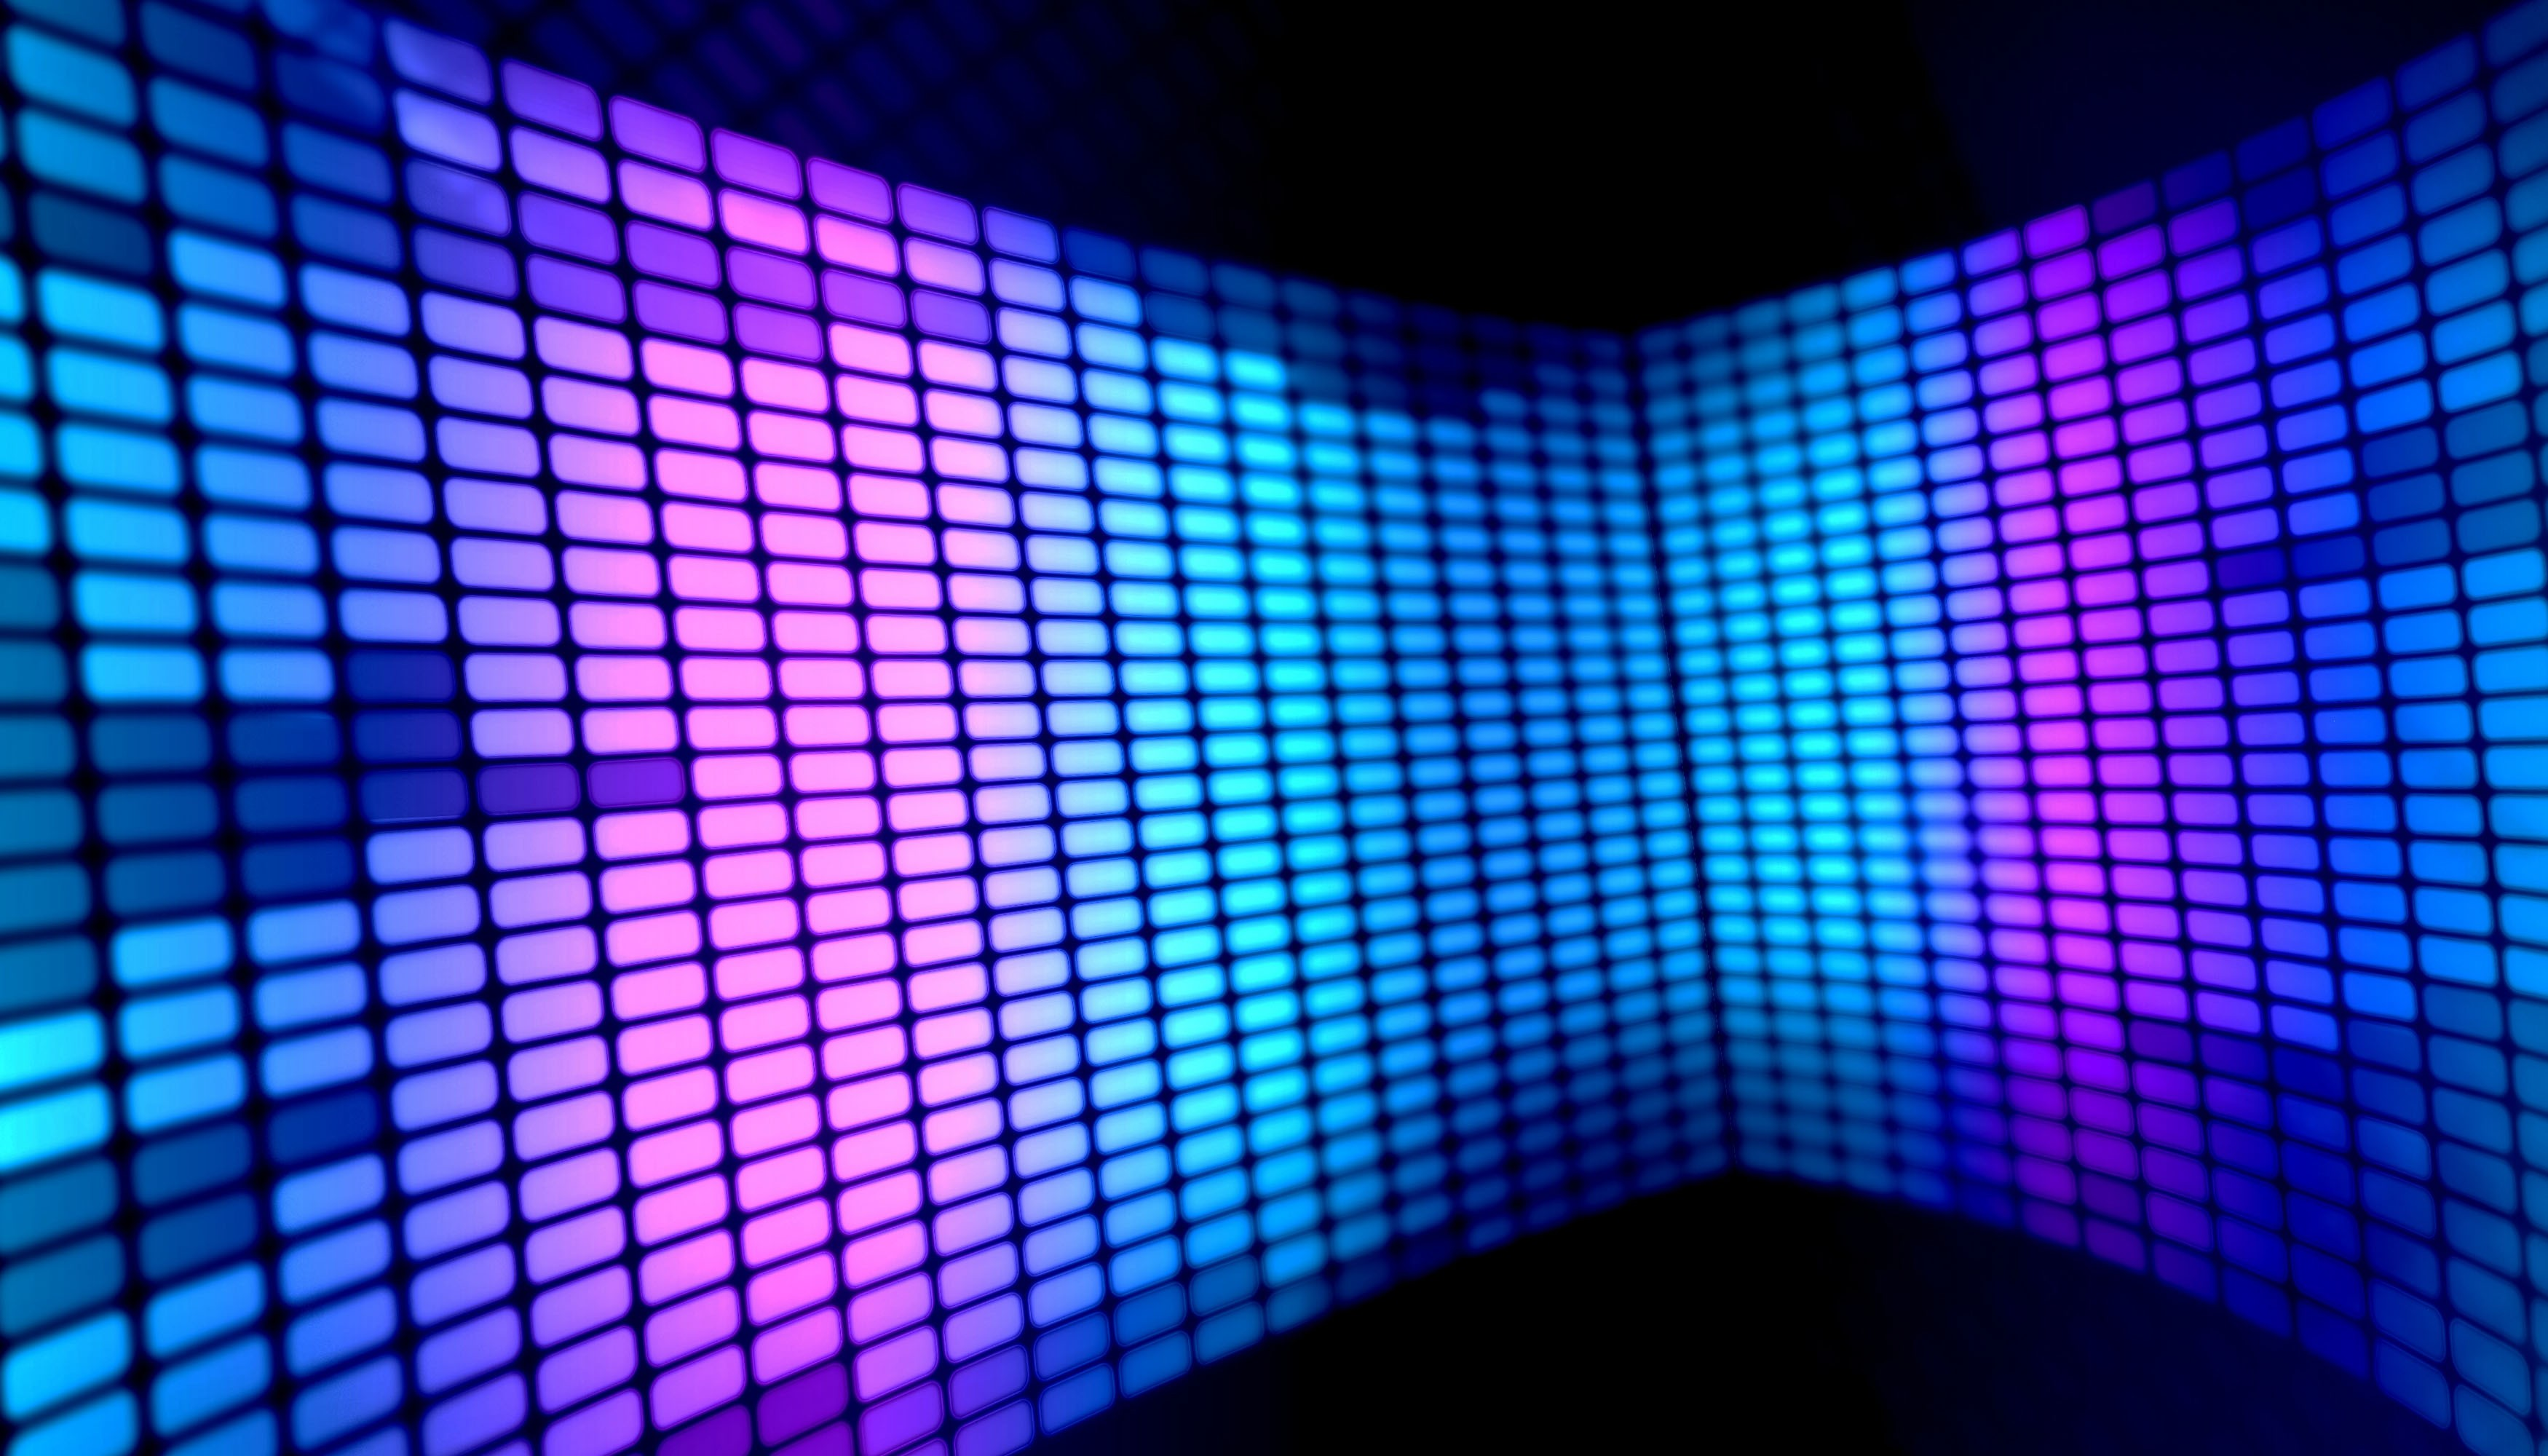 Party background ·① Download free cool backgrounds for ...